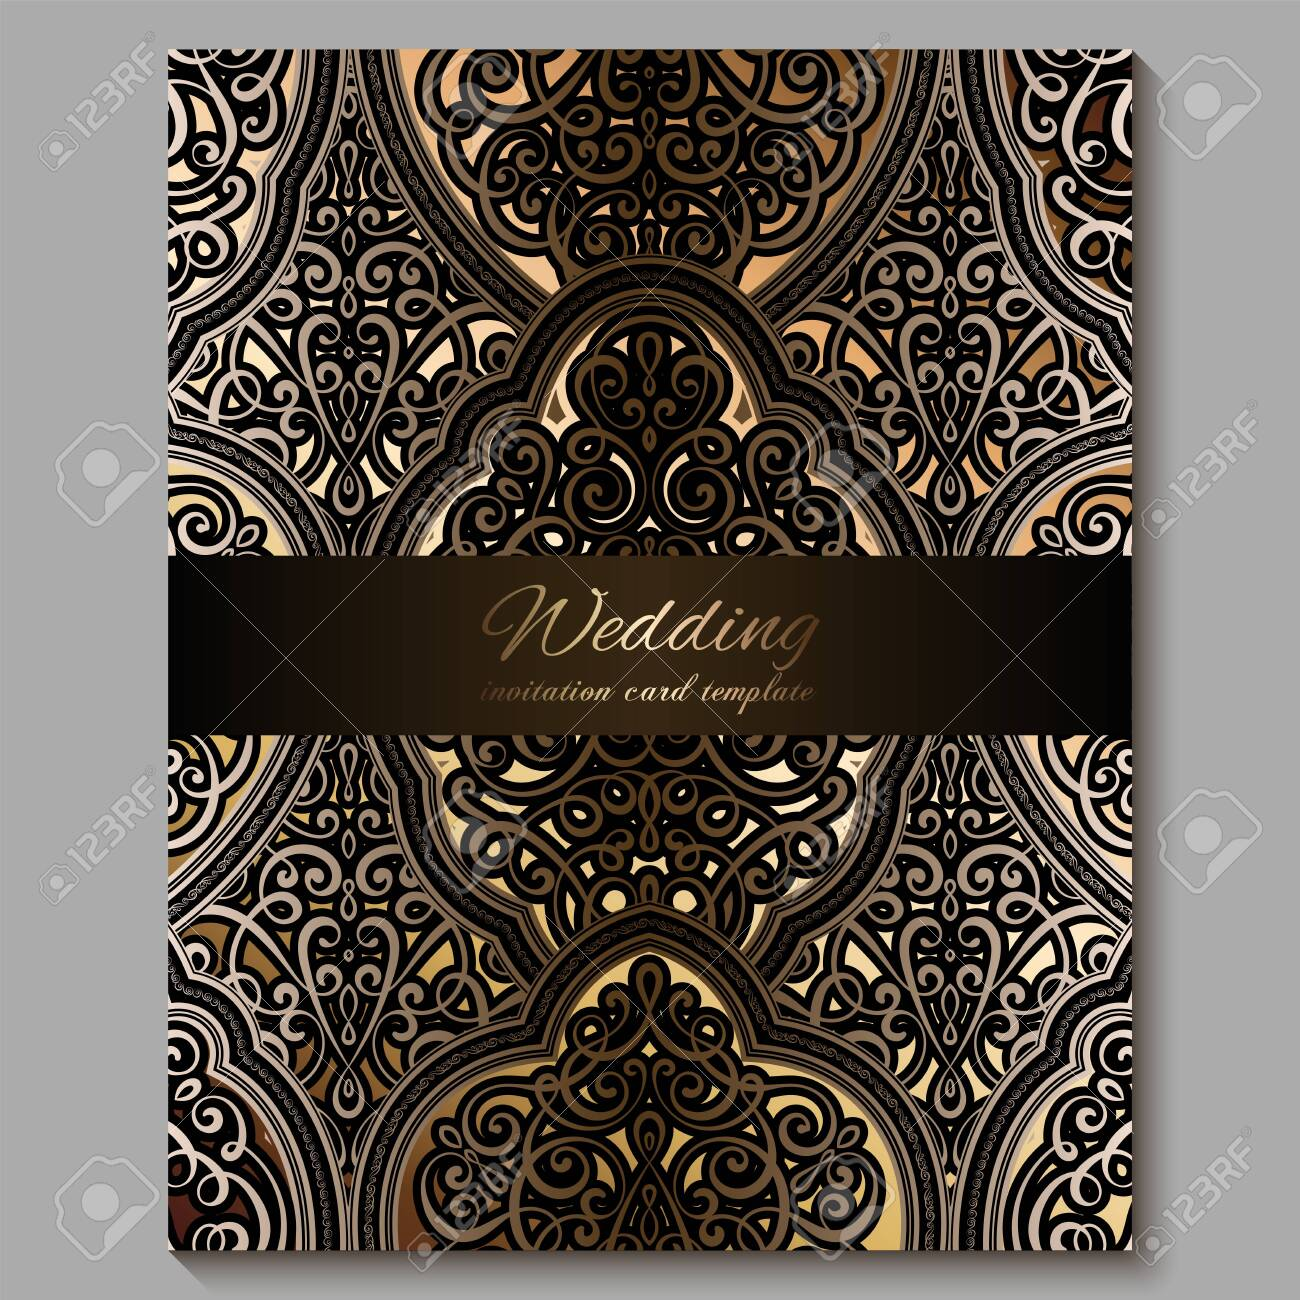 Wedding Invitation Card With Gold Shiny Eastern And Baroque Rich Royalty Free Cliparts Vectors And Stock Illustration Image 125413913